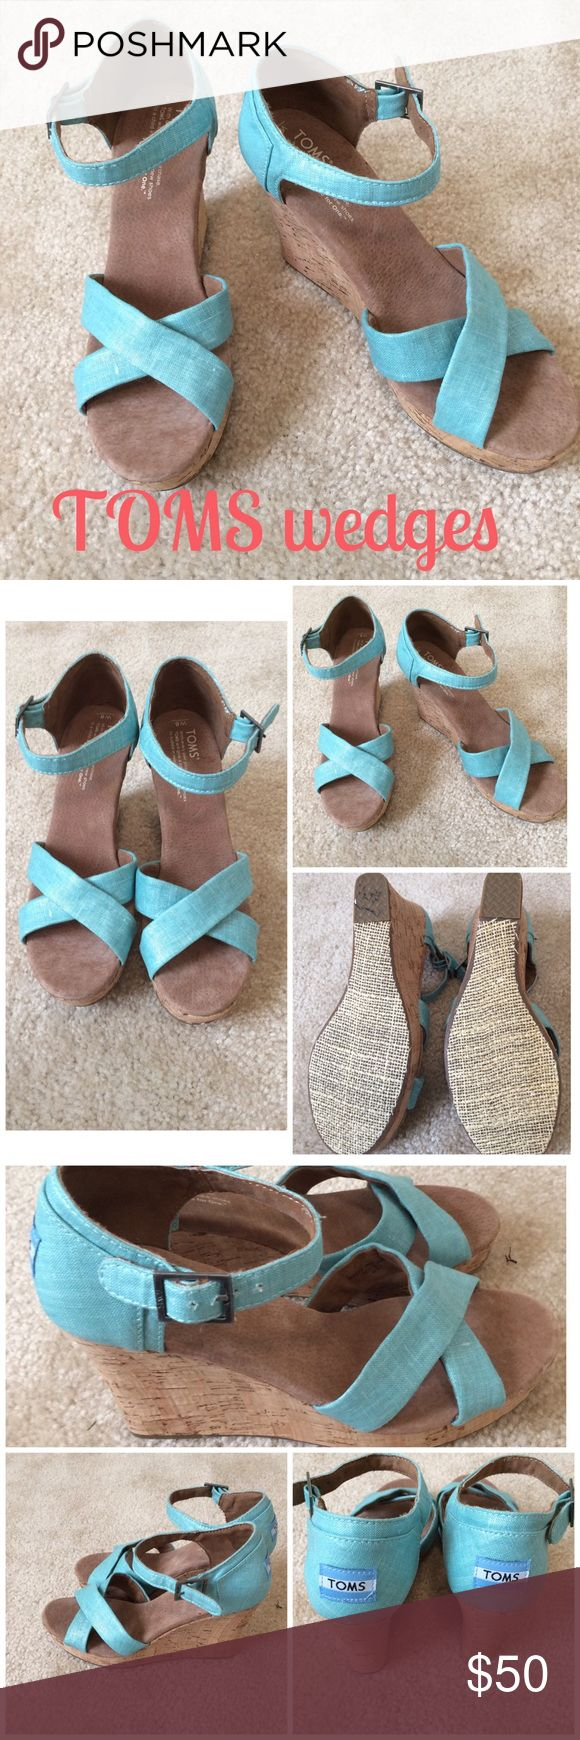 🆕 TOMS wedges Cute TOMS wedges with about 3.5 in heel..teal blue (more blue green tint)...worn once and in EUC...no box. TOMS Shoes Wedges